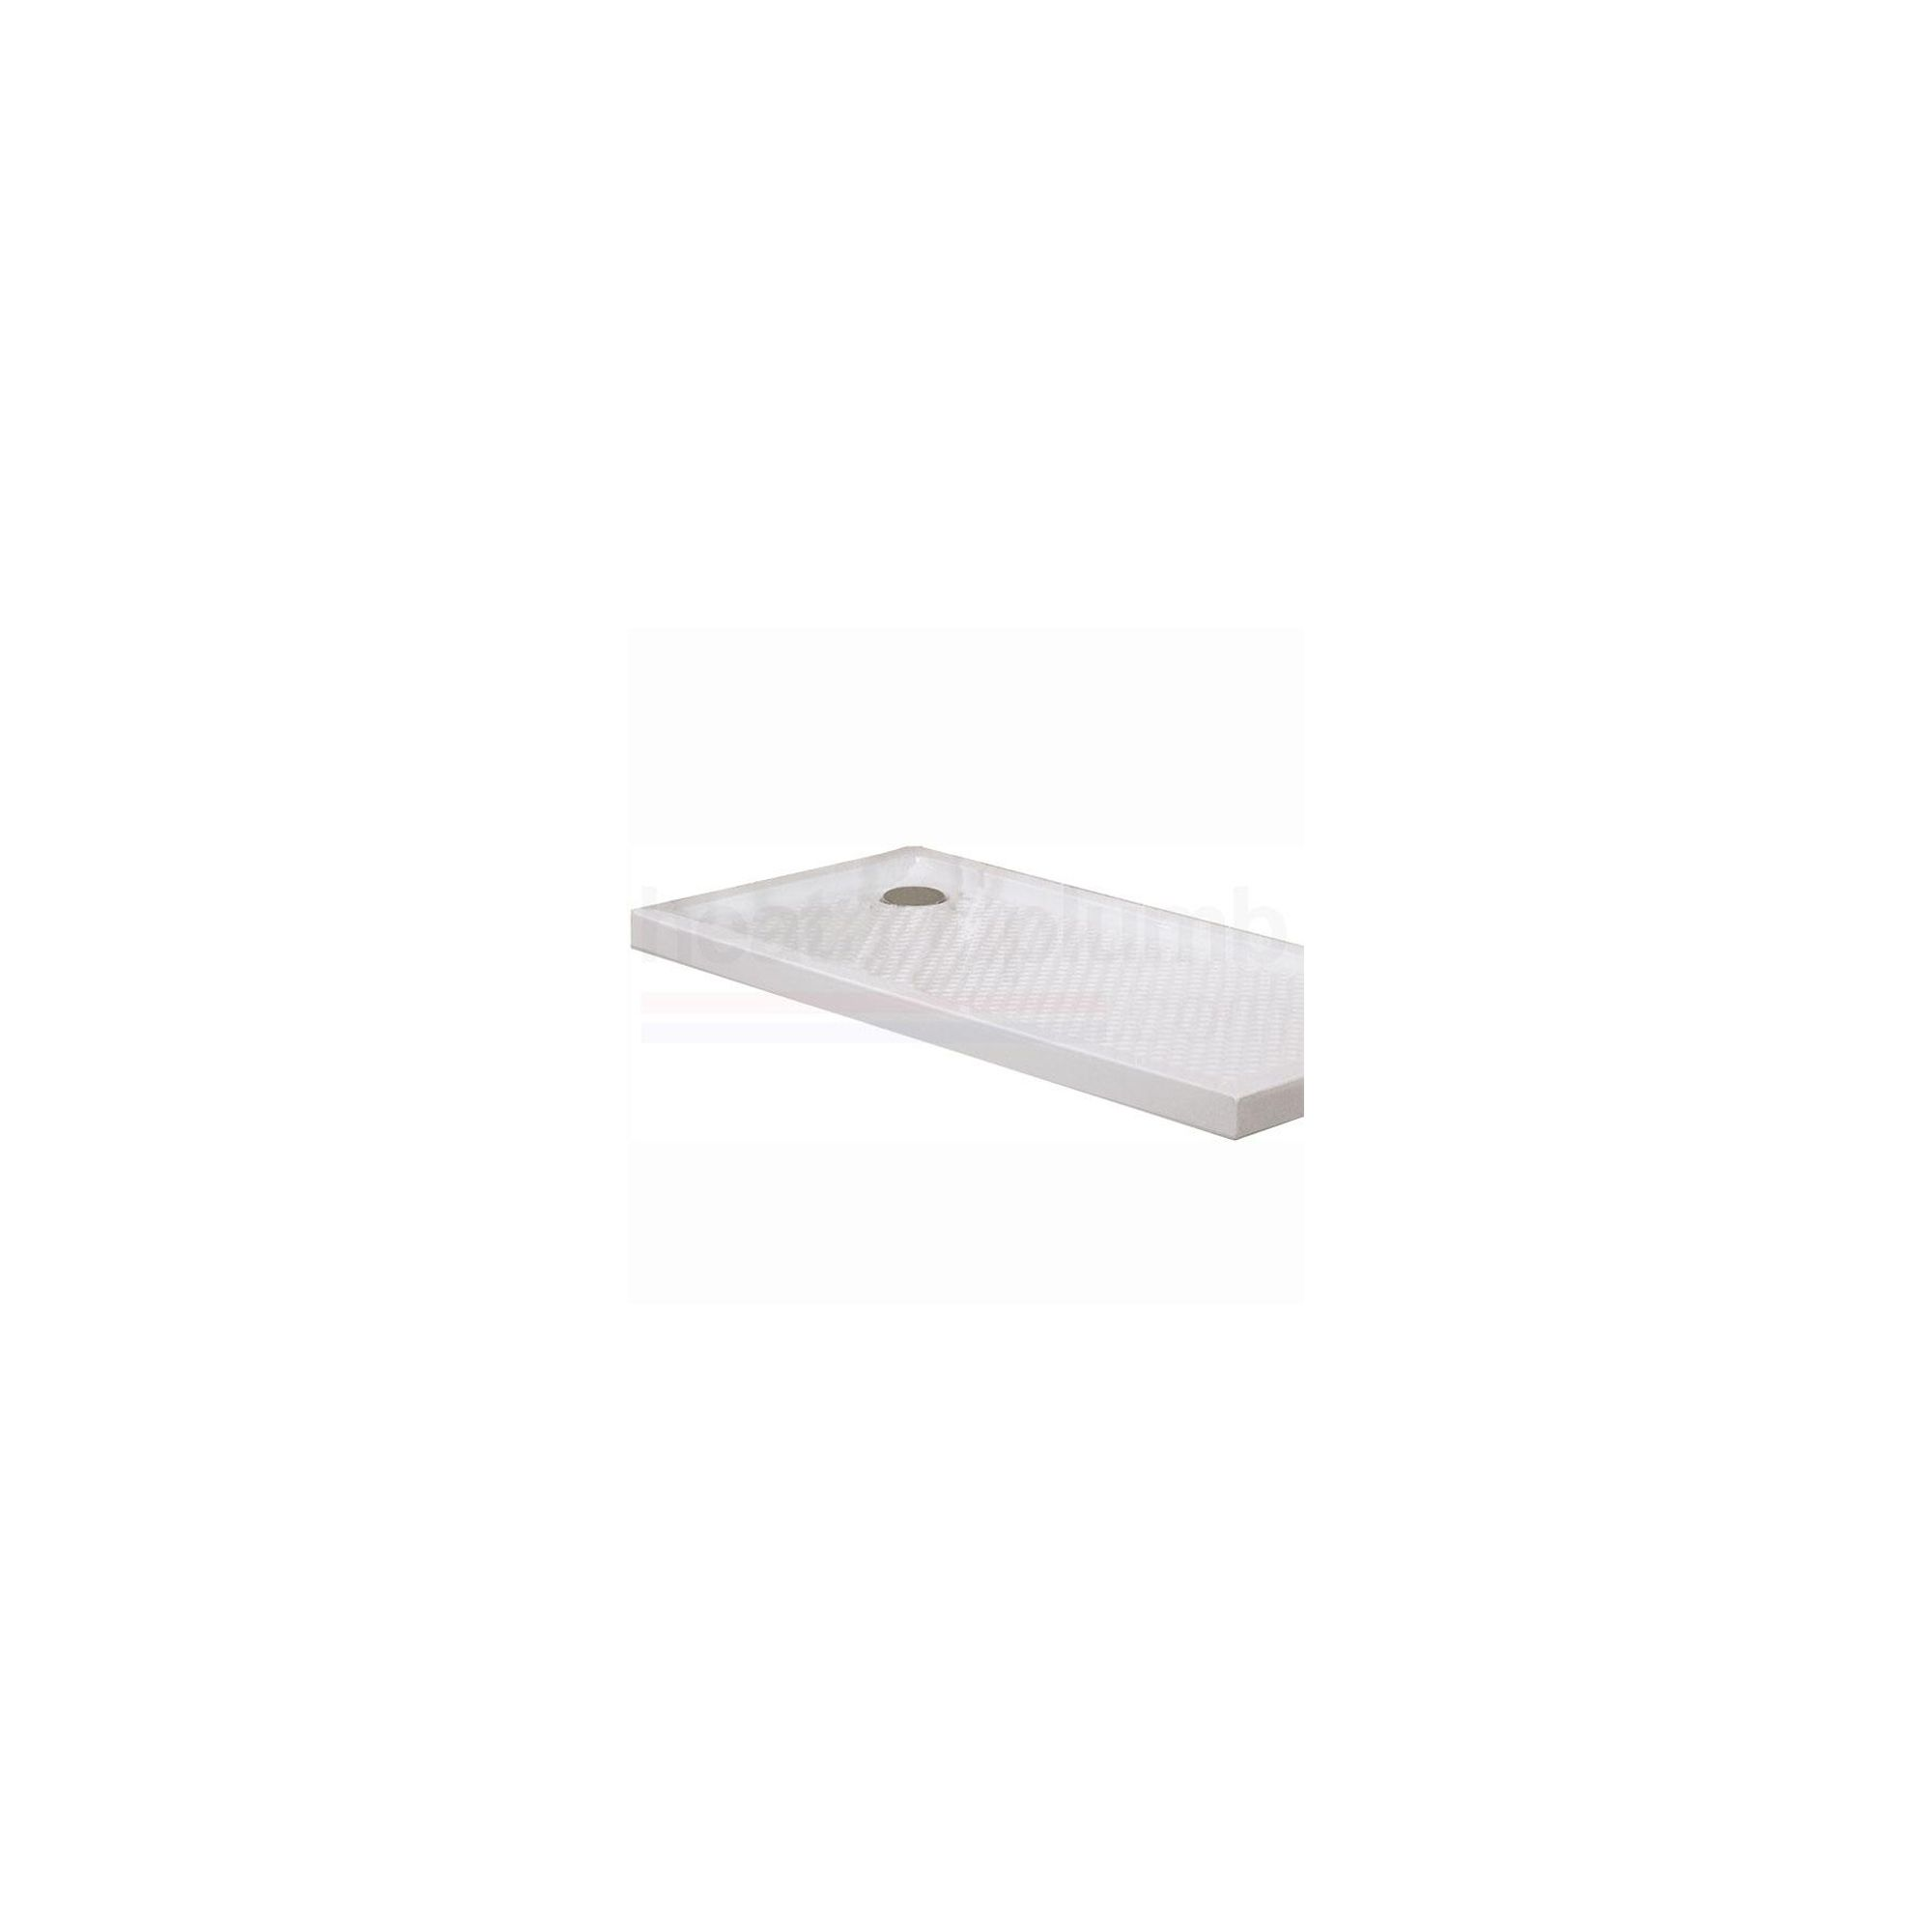 AKW Keppel Rectangular Shower Tray 1700mm x 700mm at Tesco Direct